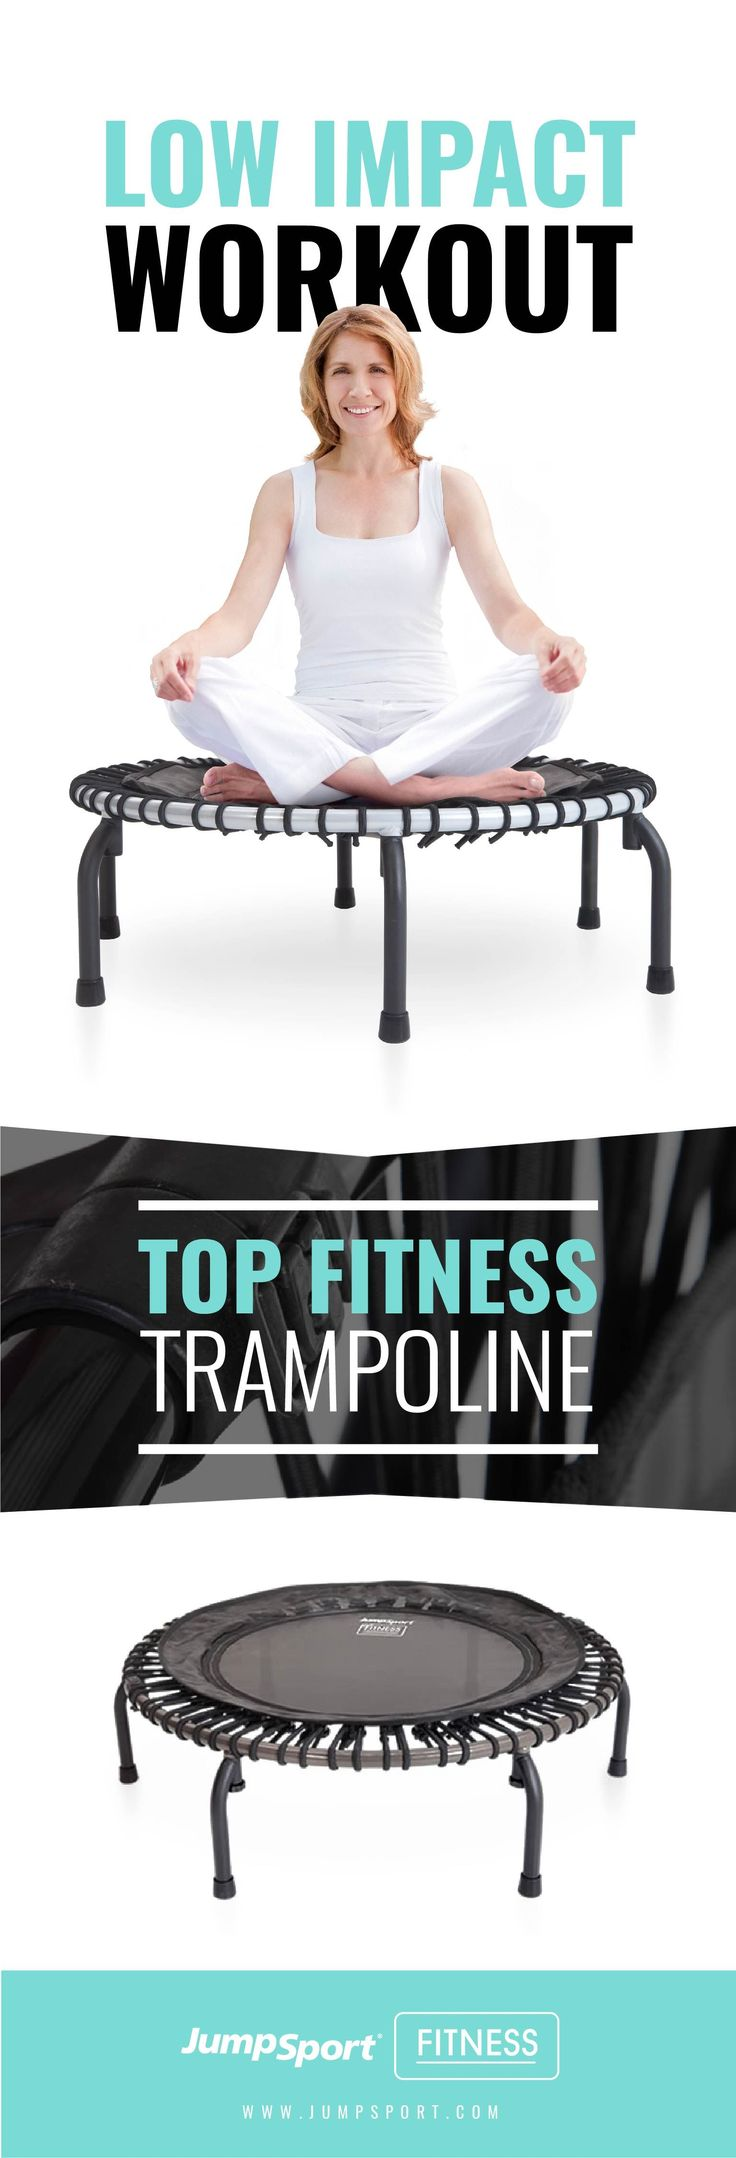 Jumpsport fitness trampolines. Putting the fun in fitness! Visit: https://www.jumpsport.com/fitness/ Jump into a new you with the most fun workout you'll find on a fitness trampoline. Thousands of bouncers use JumpSport Fitness Trampolines in professional clubs and at home. #jumpsport